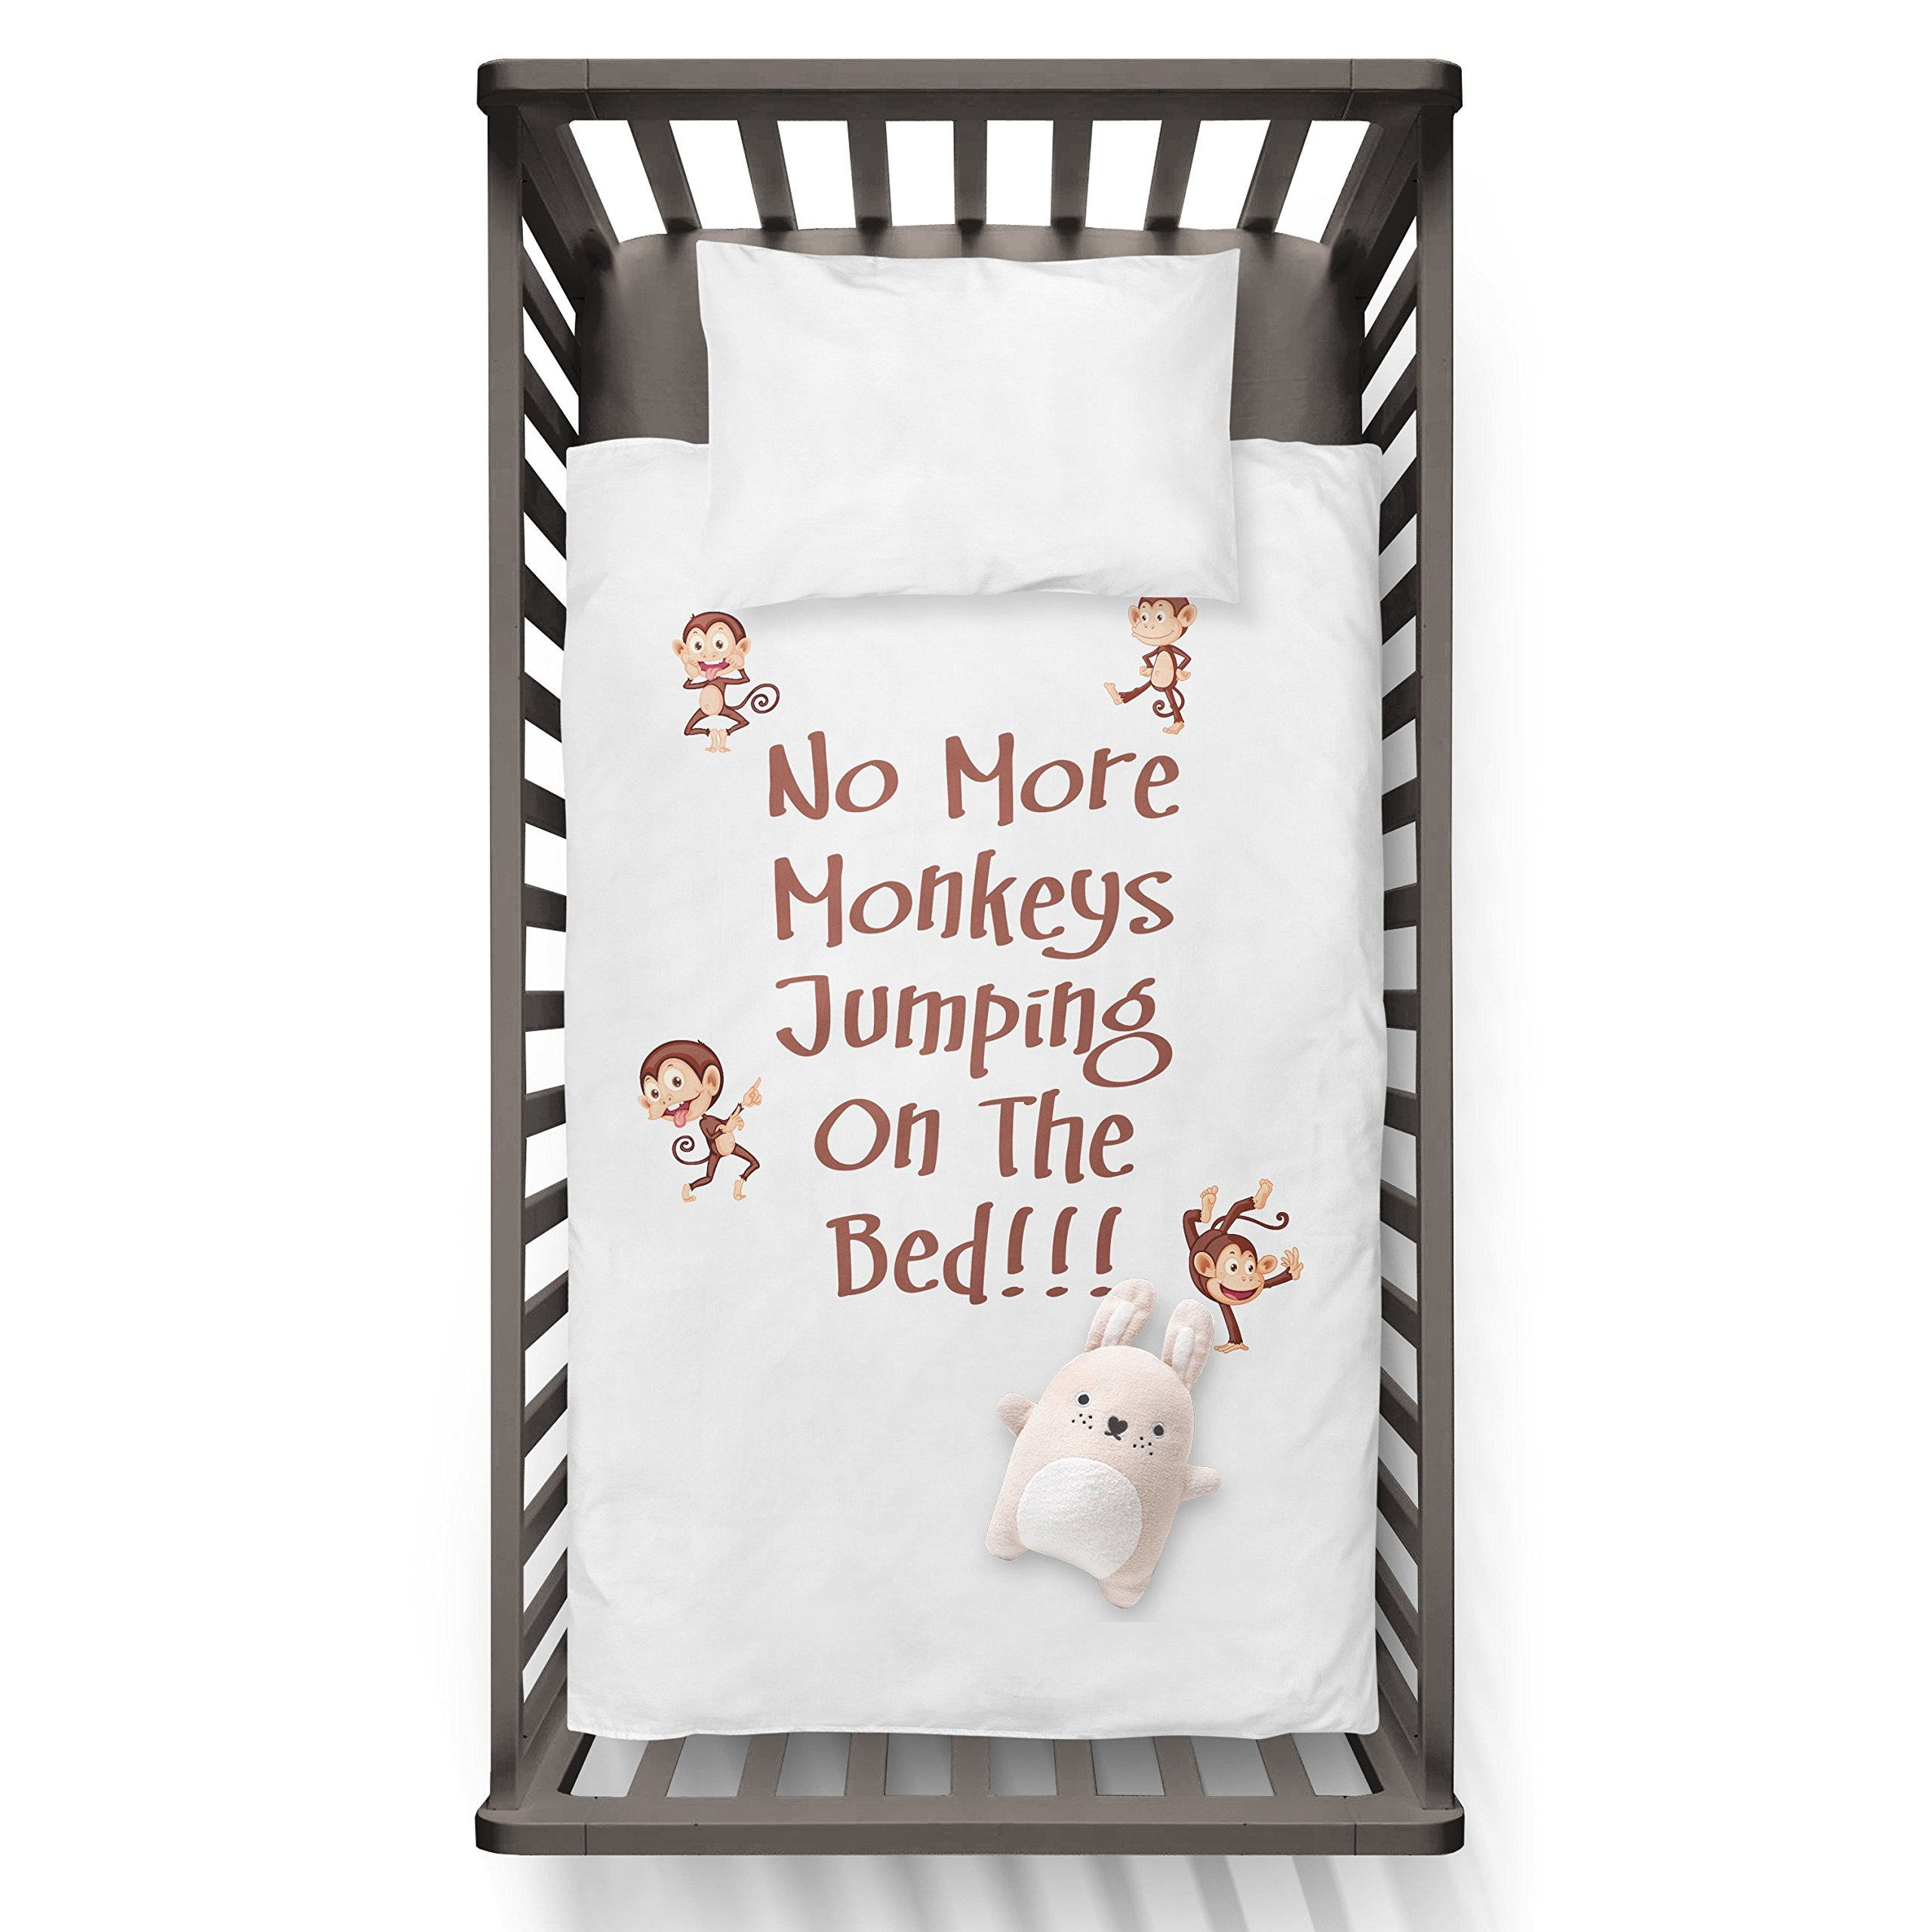 No More Monkeys Jumping On The Bed!!! Funny Humor Hip Baby Duvet /Pillow set,Toddler Duvet,Oeko-Tex,Personalized duvet and pillow,Oraganic,gift